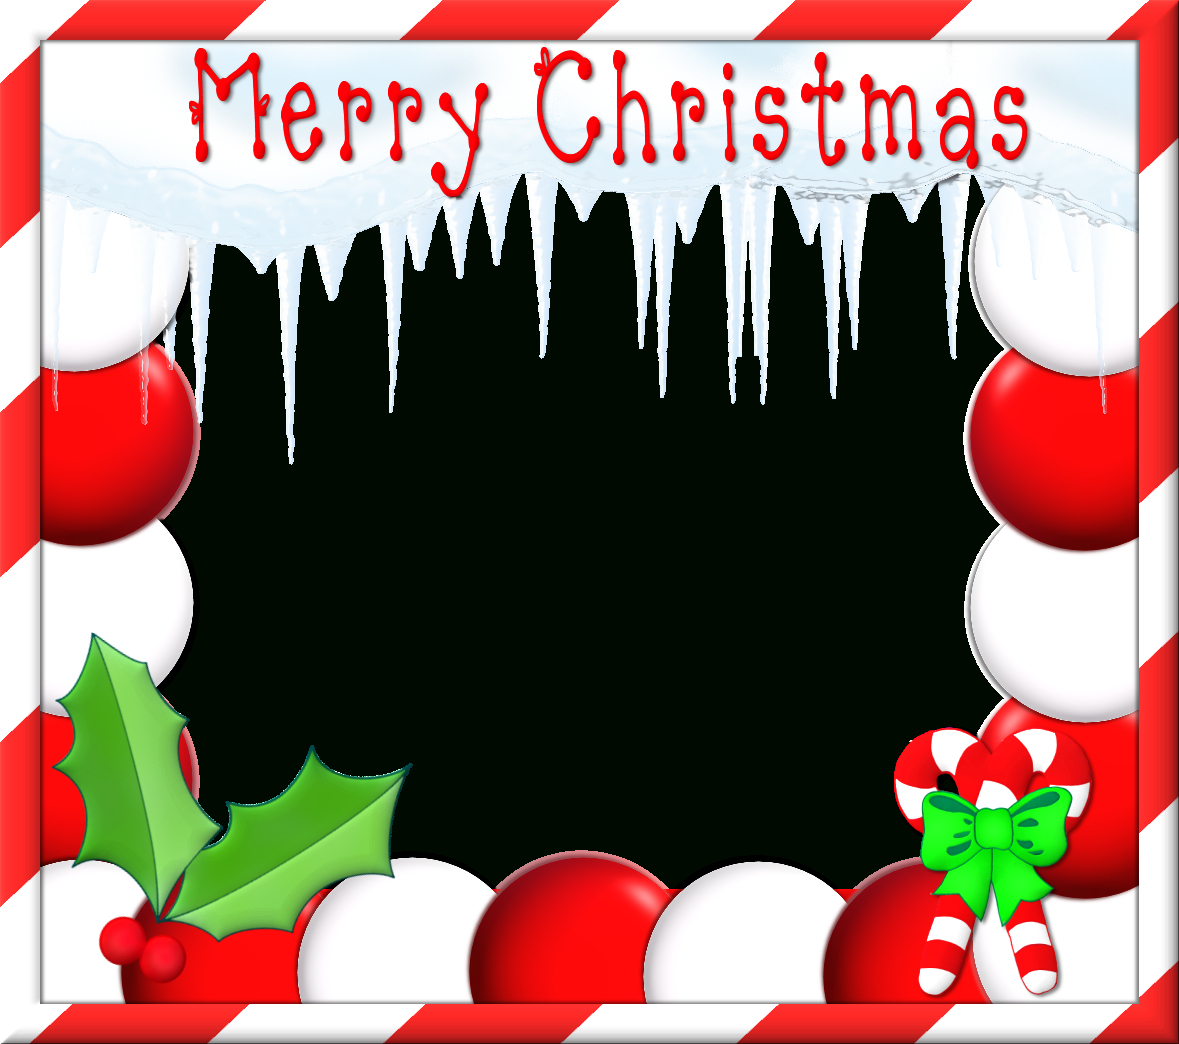 Free Christmas Frame Cliparts, Download Free Clip Art, Free Clip Art - Free Printable Christmas Frames And Borders